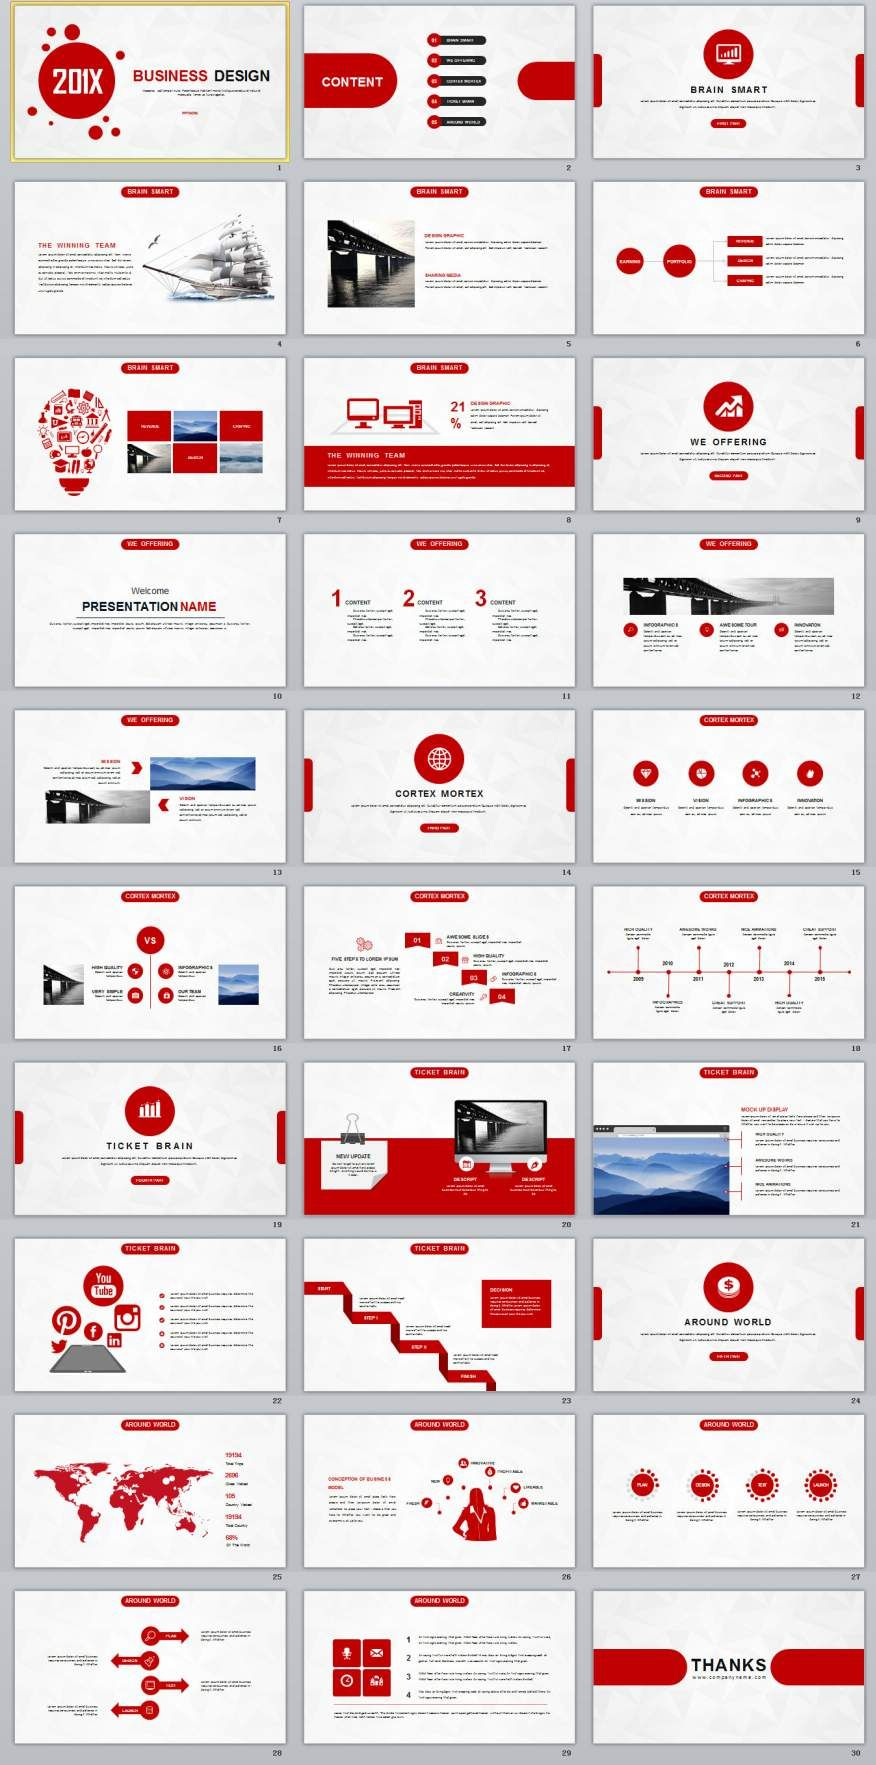 30 red creative business design powerpoint template powerpoint